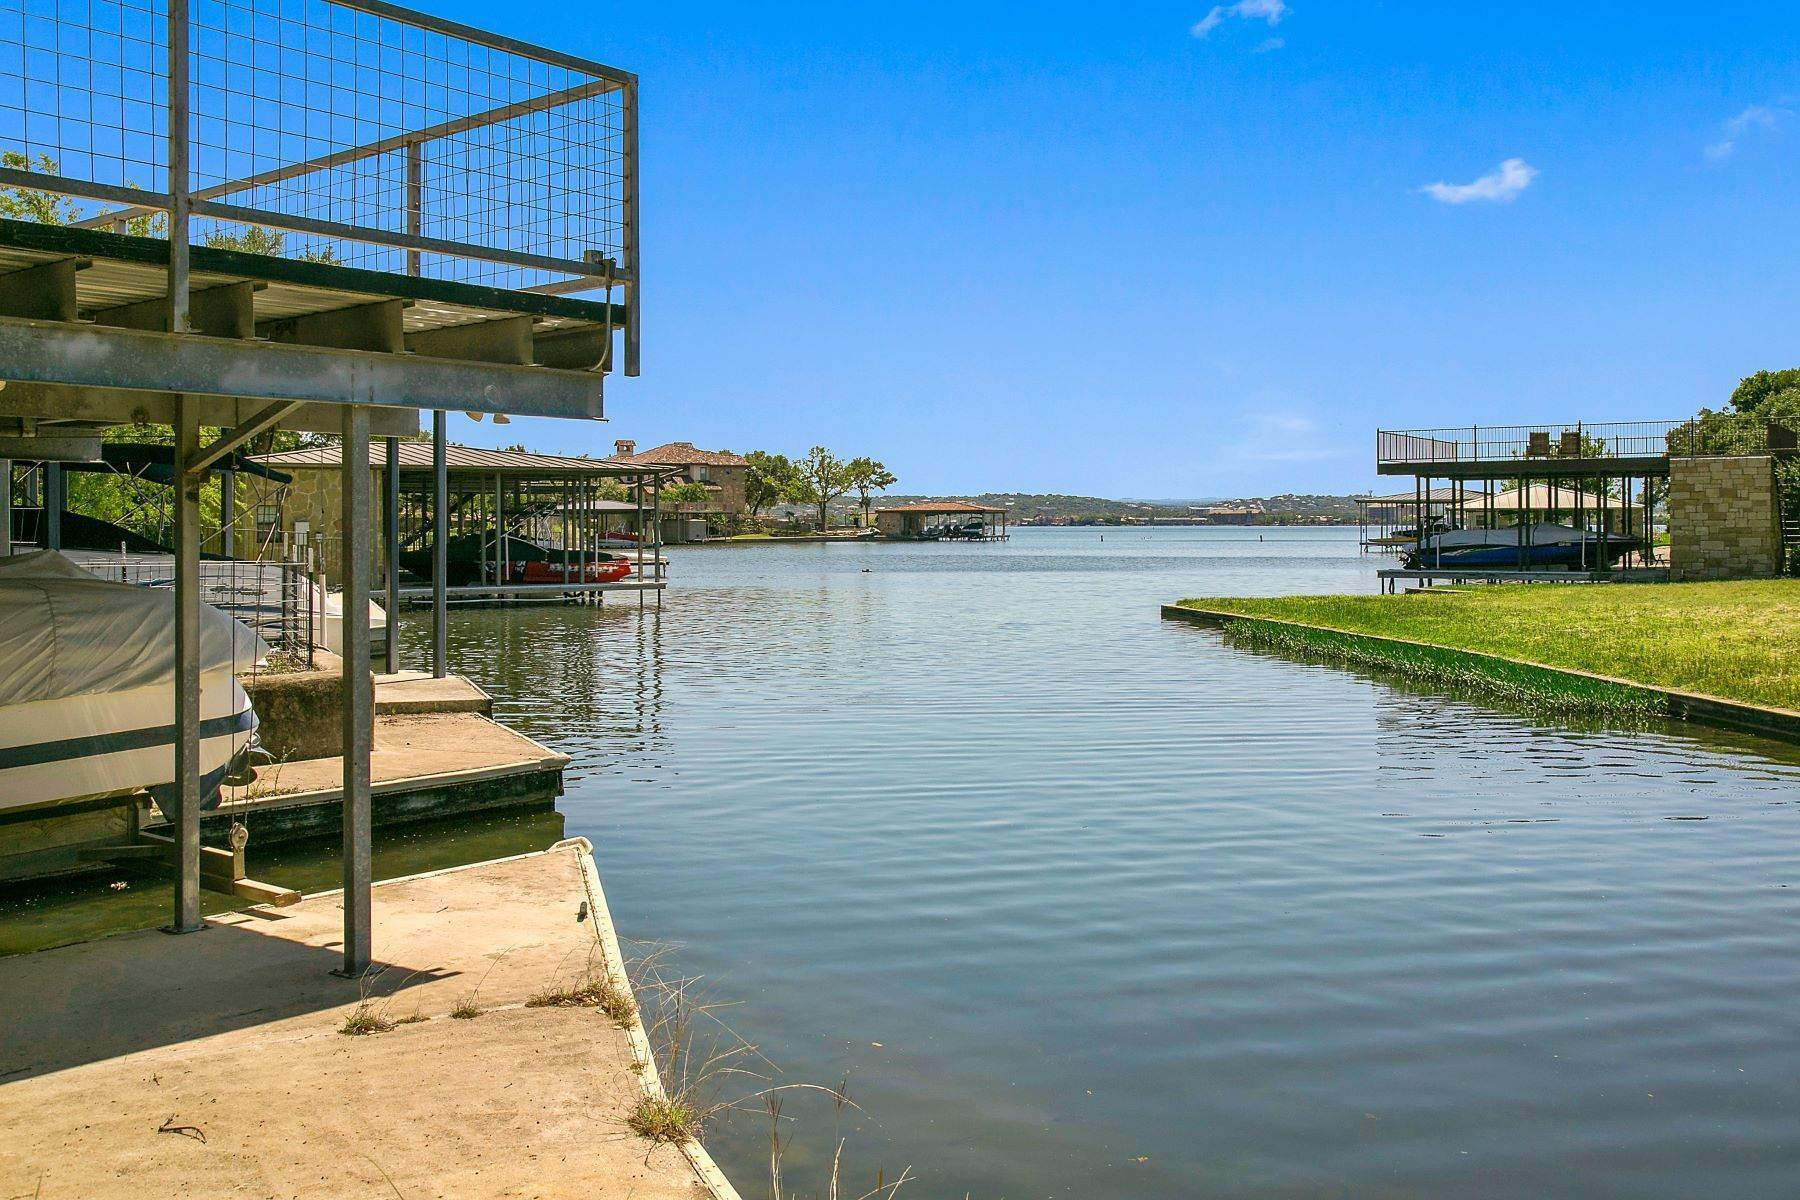 Land for Sale at 207 Wilderness Drive West, Marble Falls, TX 78654 207 Wilderness Drive West Marble Falls, Texas 78654 United States